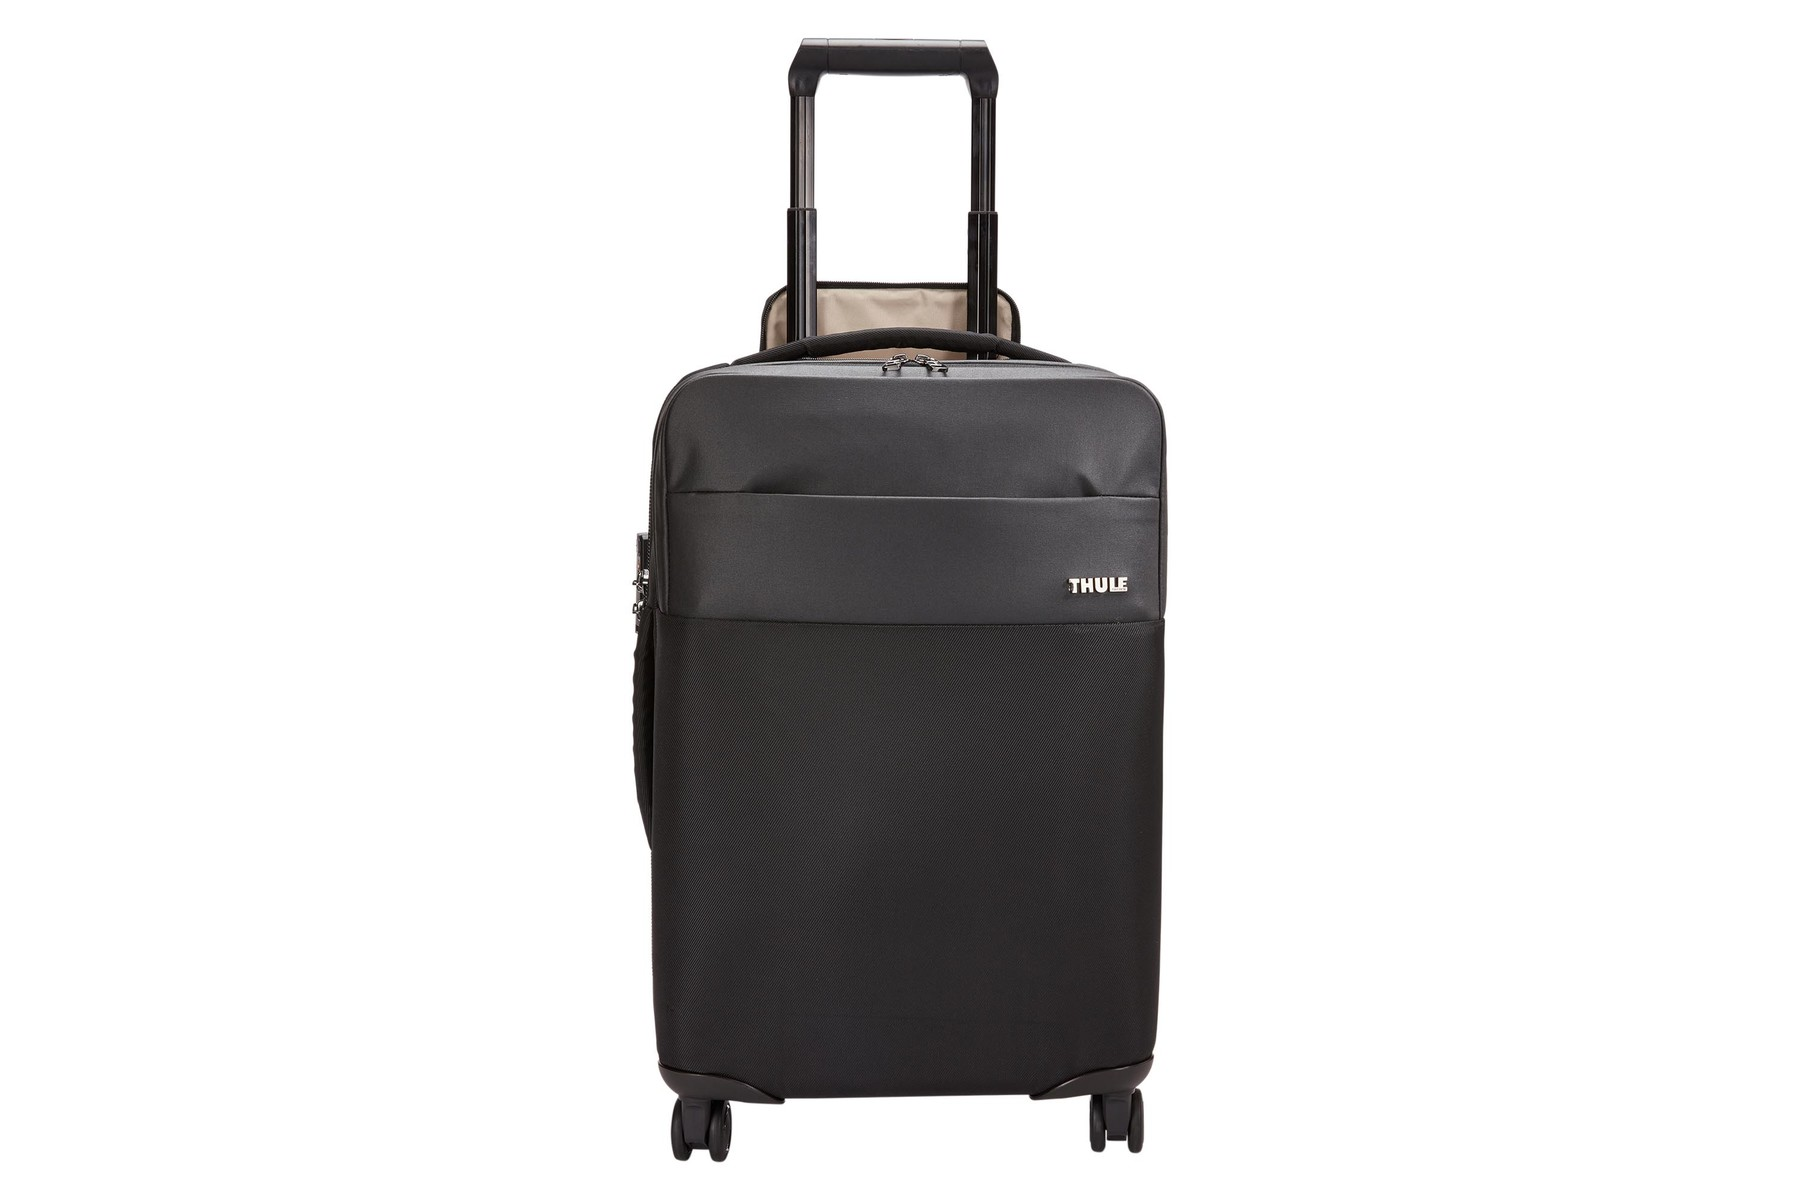 Thule Spira Carry On Spinner SPAC-122 Black (3204..